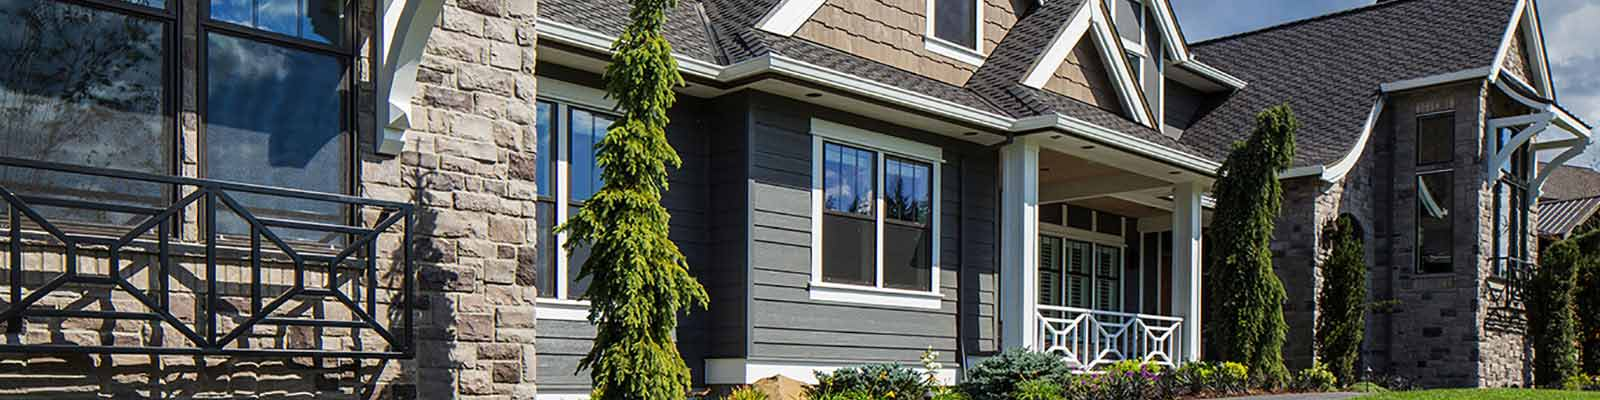 Lp Siding Krech Exteriors Inver Grove Heights Mn